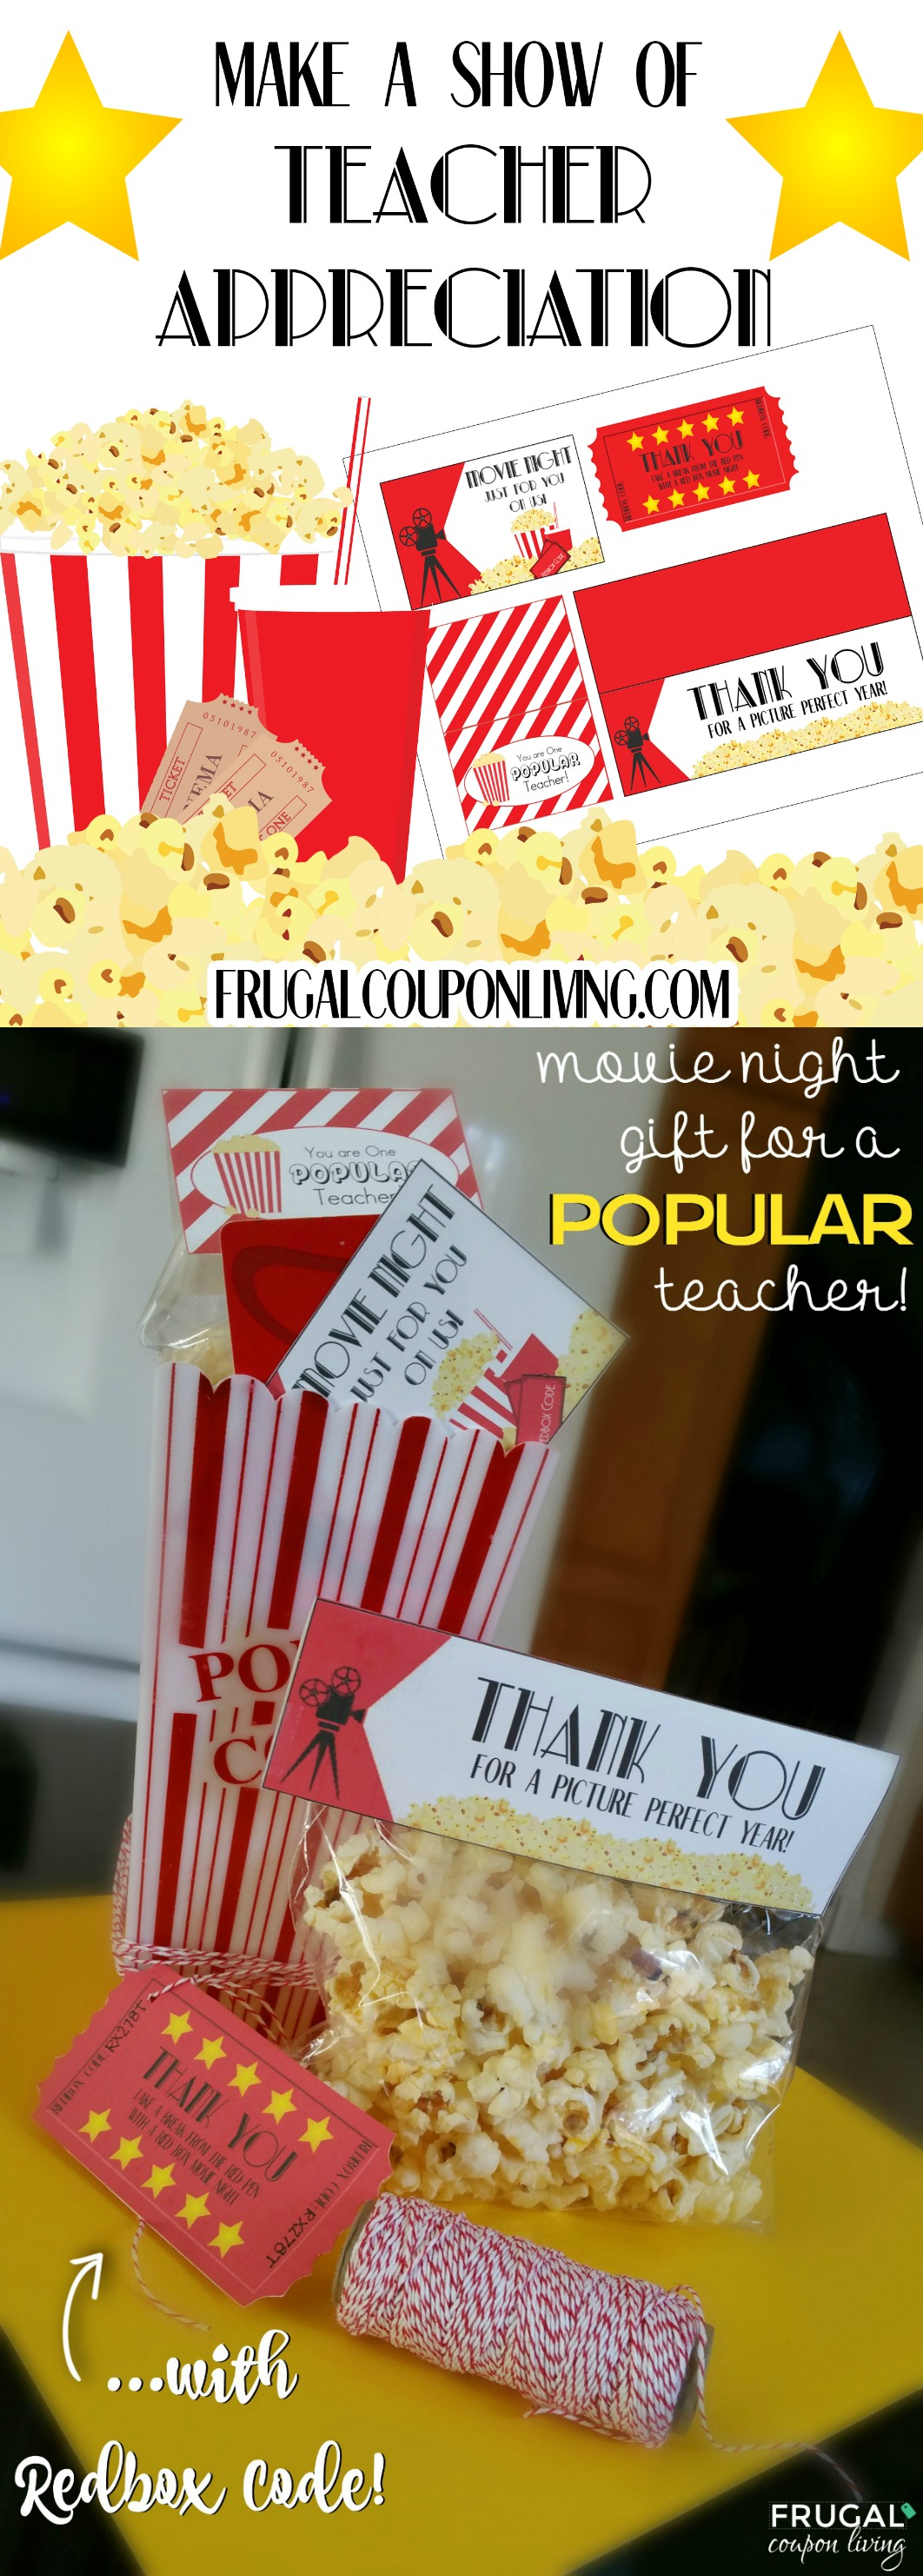 popular-teacher-appreciation-collage-frugal-coupon-living